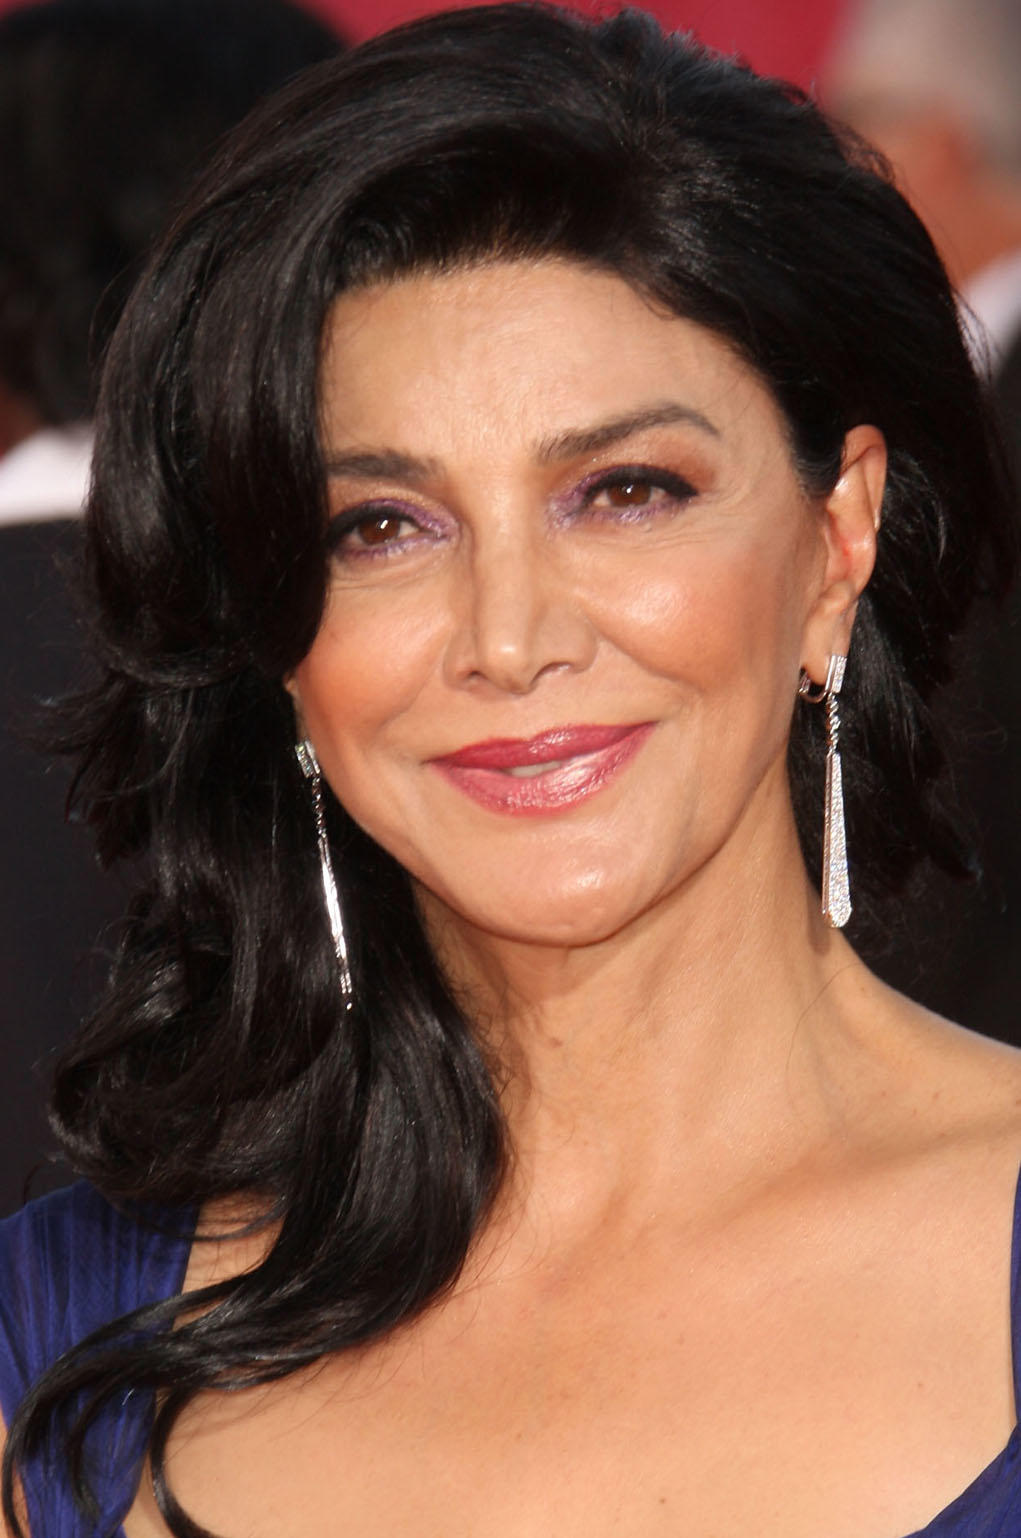 Shohreh Aghdashloo at the 61st Primetime Emmy Awards in Los Angeles.